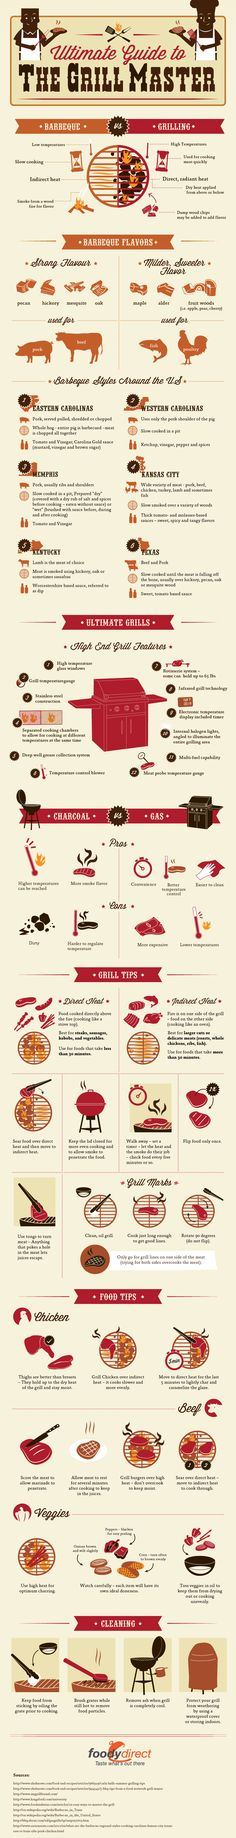 "Whether you're a backyard BBQ beginner or a long-time grilling enthusiast, you're bound to find helpful tips in our newest infographic, ""Ultimate Guide to the Grill Master."" Read on to learn about the different barbecue styles that are popular throughout the country, how to know when to use direct versus indirect heat, the best way to grill different types of meats and much more. We'll have you manning the grill like a pro in no time!"